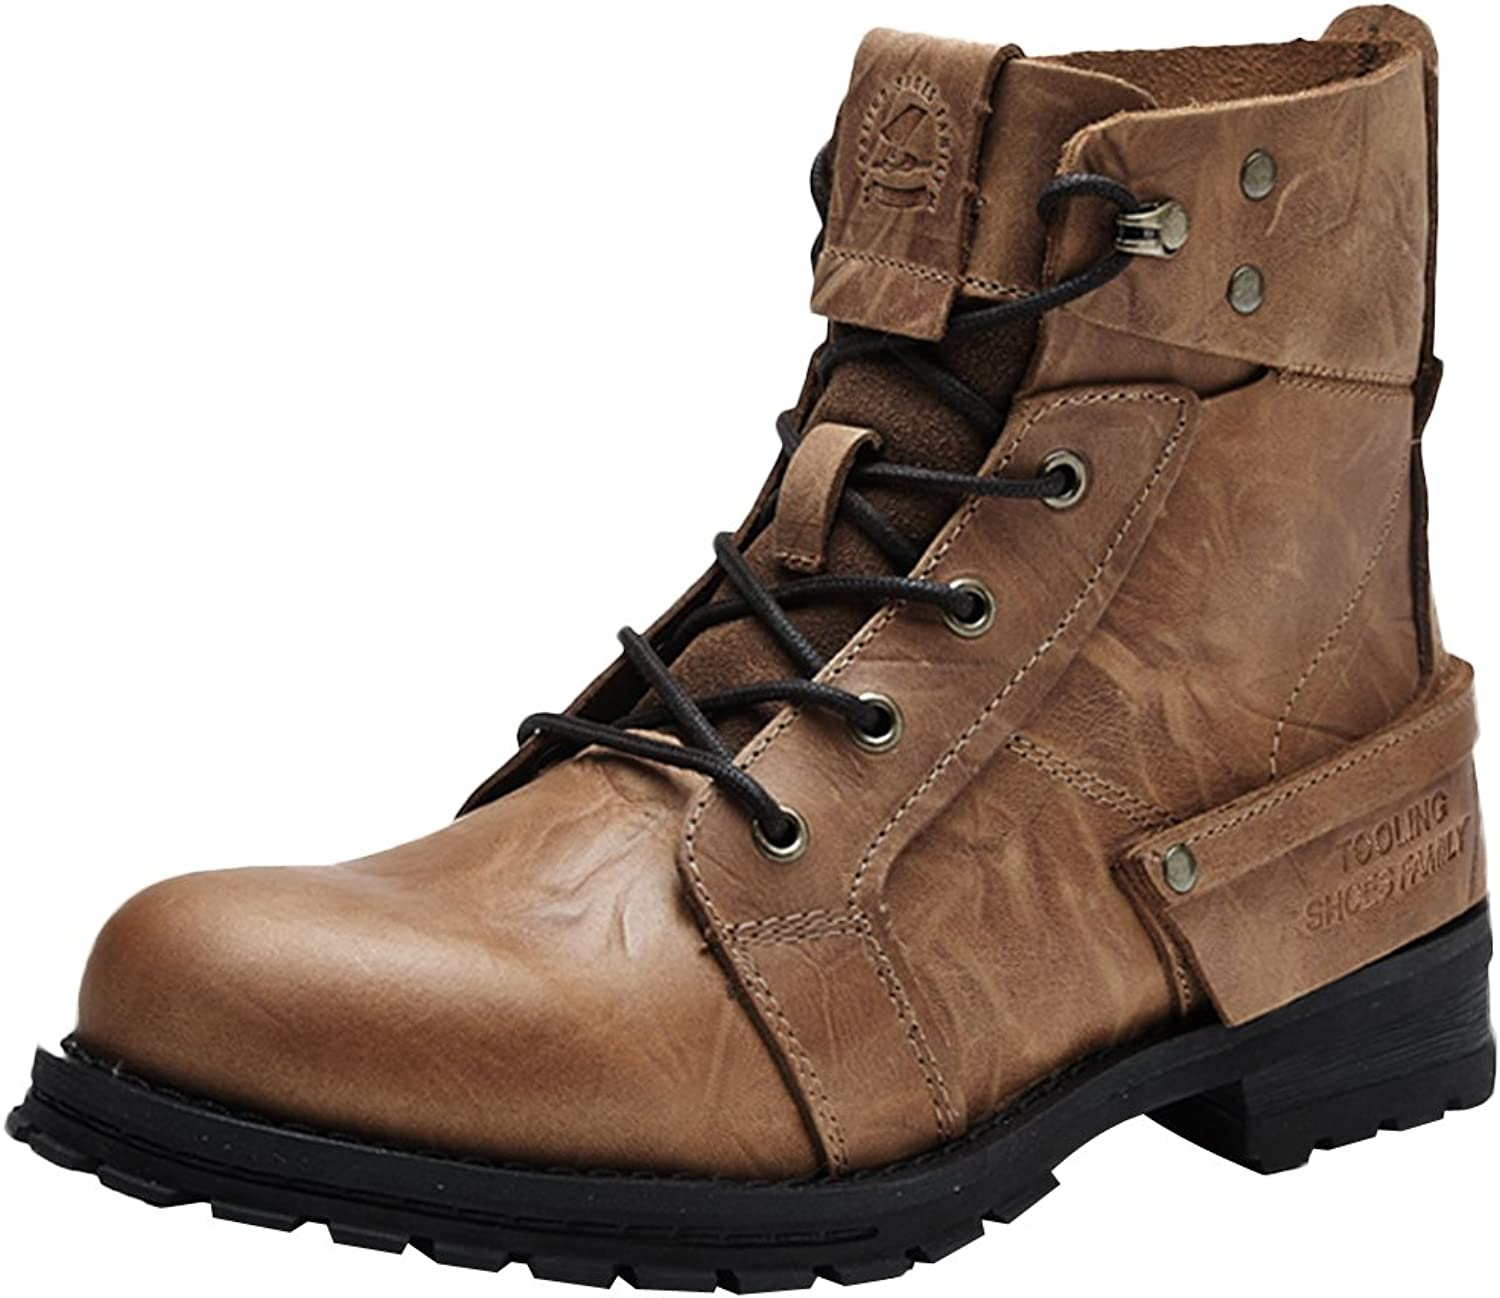 Insun Men's Cowhide Leather Lace Up Work Boots